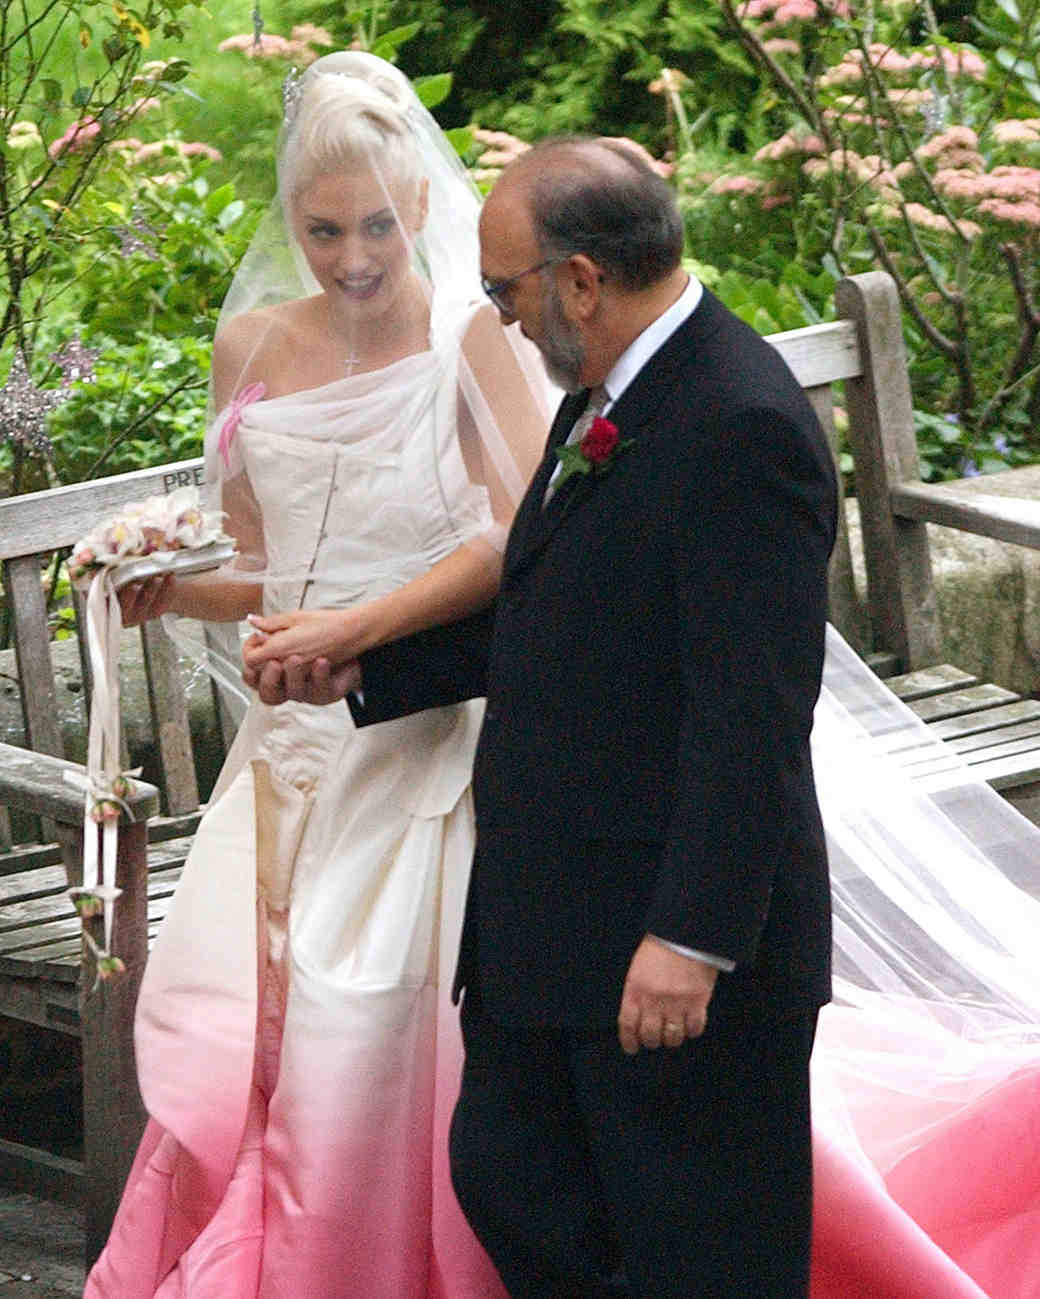 Gwen Stefani and Gavin Rossdale Wedding Photo